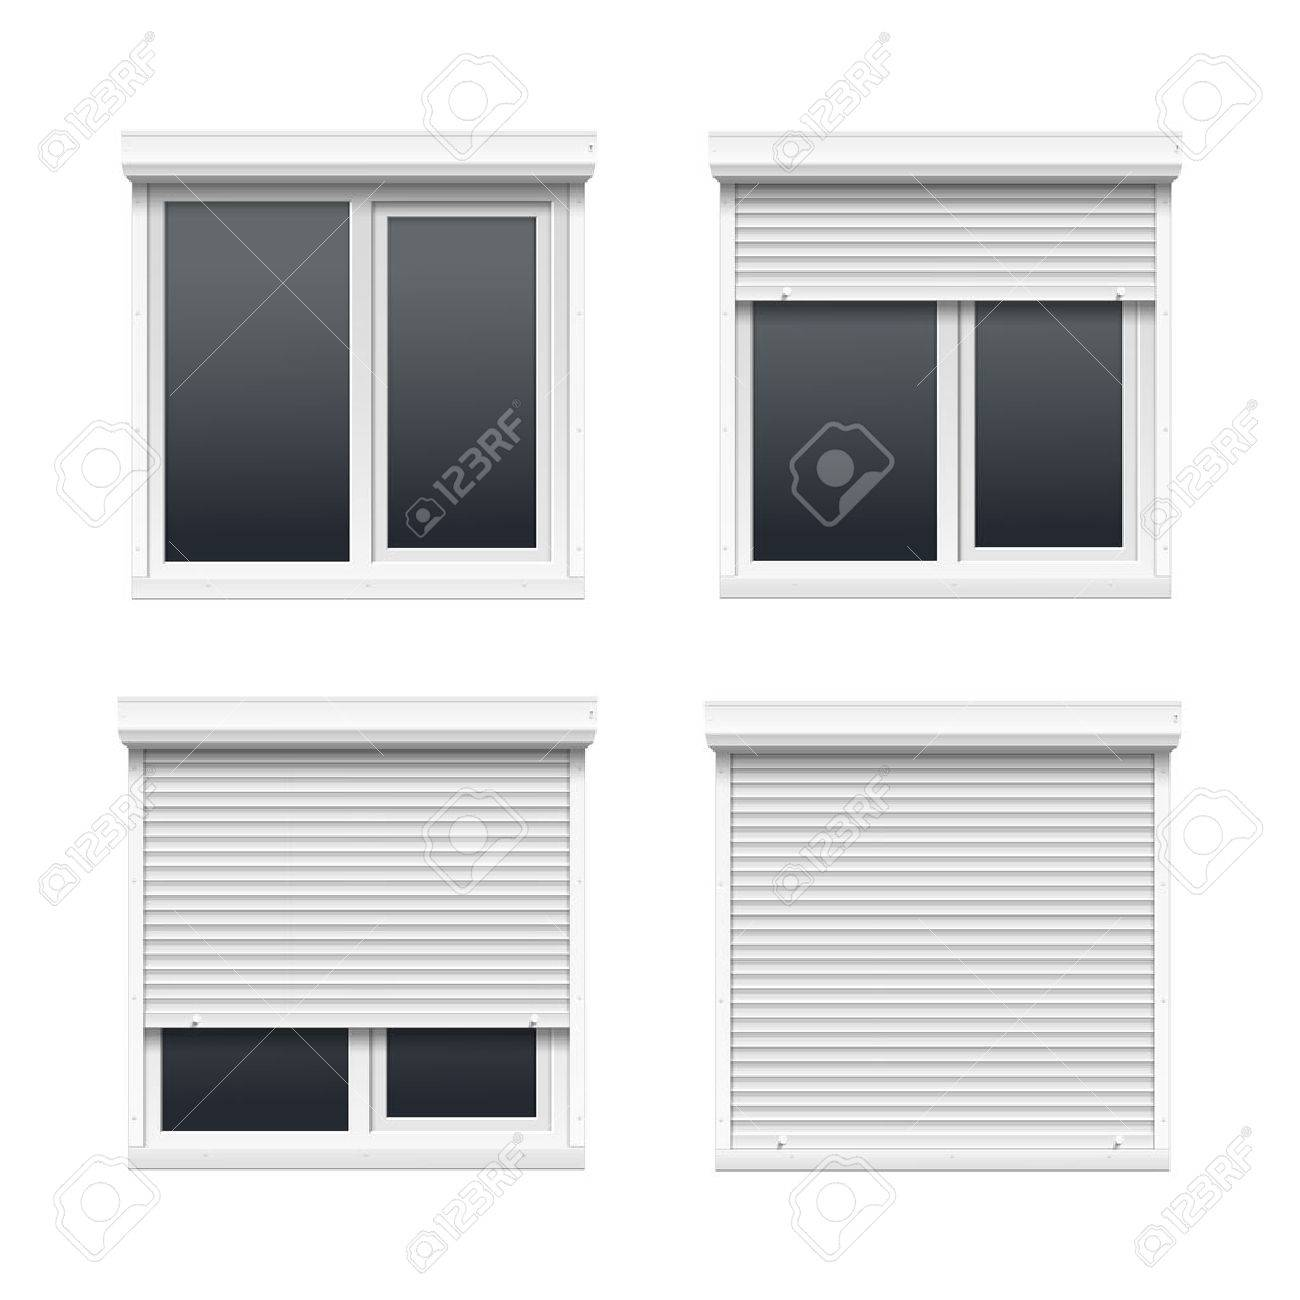 1380 Window Shutters Stock Vector Illustration And Royalty Free